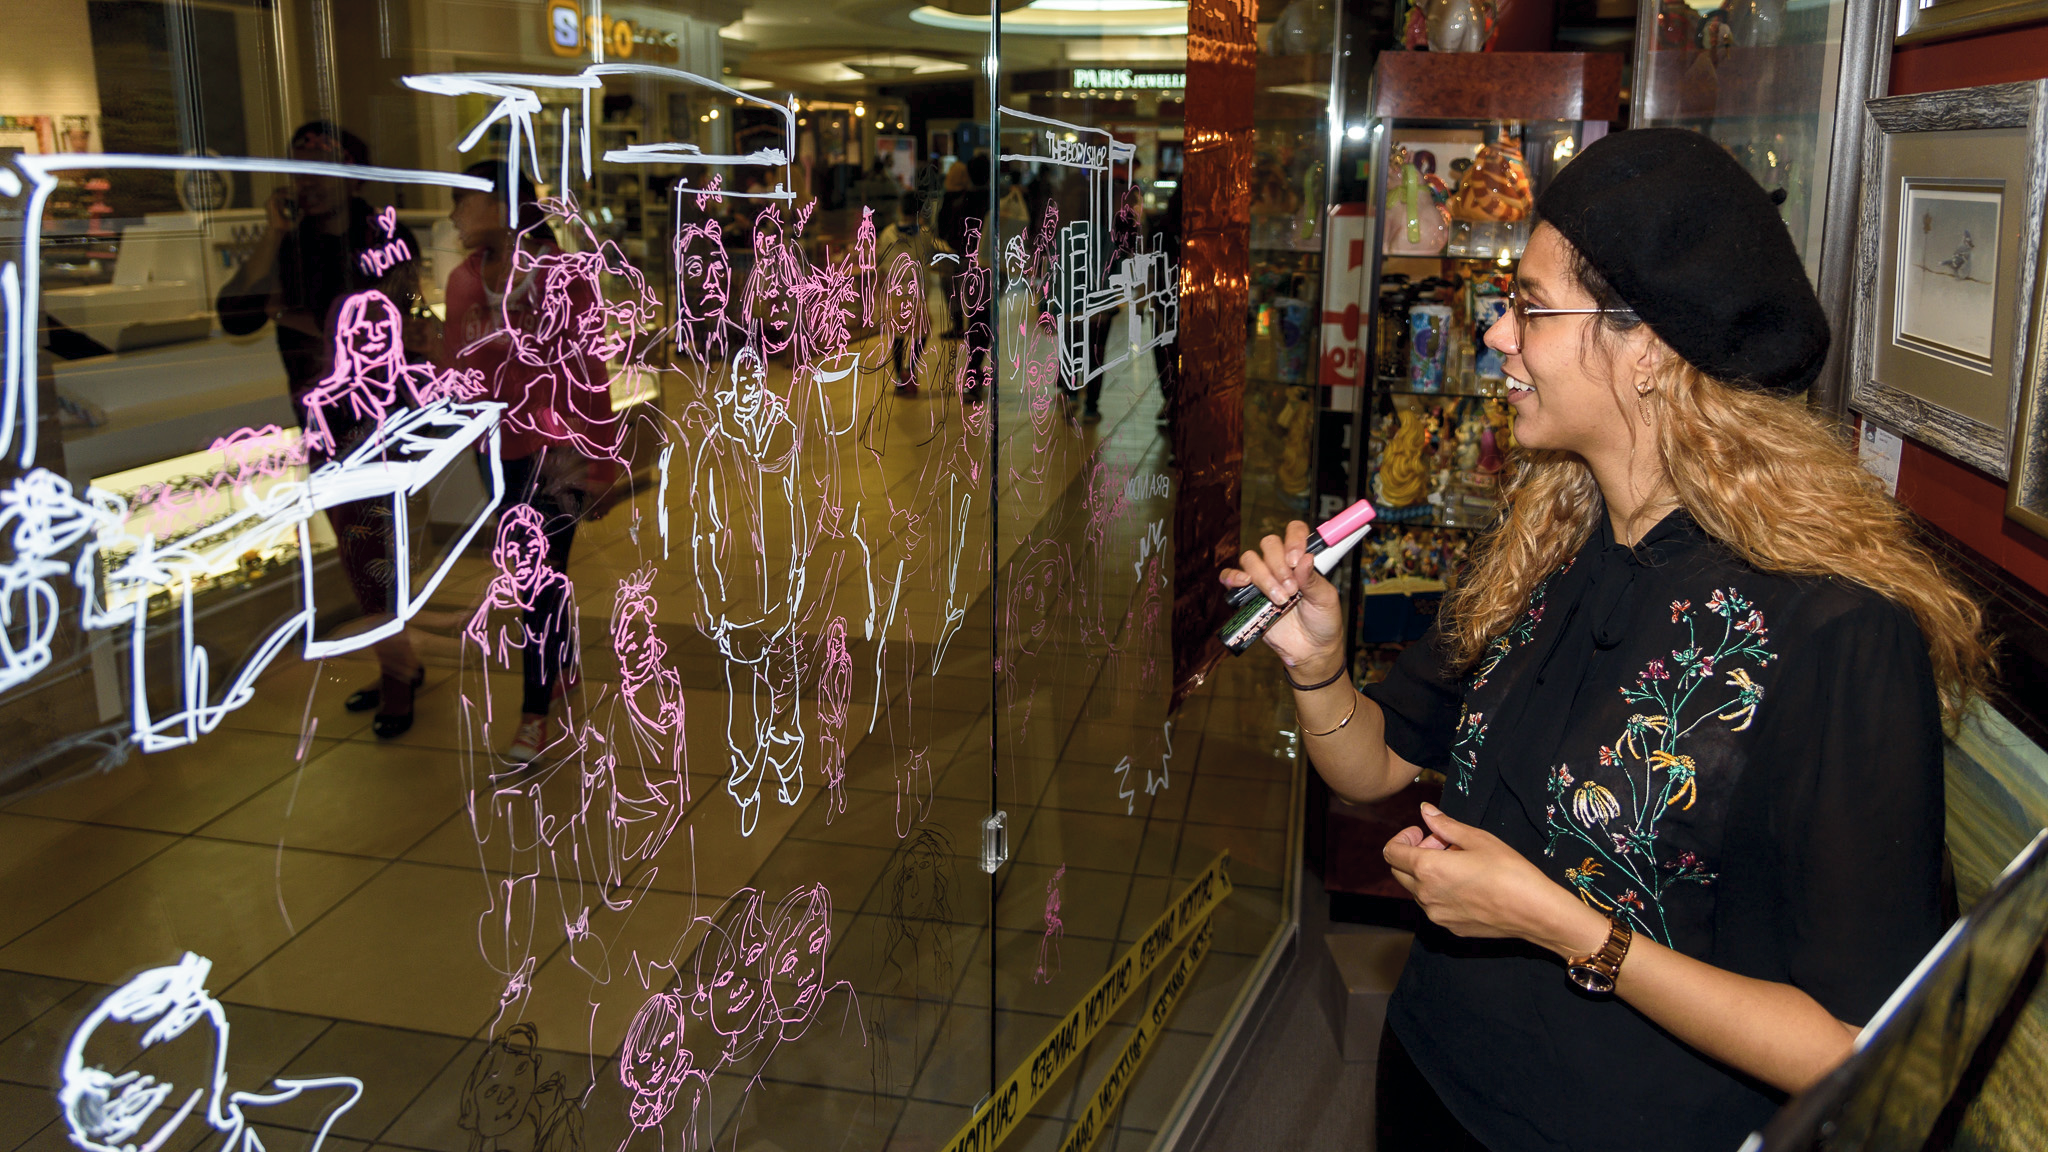 Window Event at Avenida Art Gallery in Market Mall. Photo credit: Pier Moreno